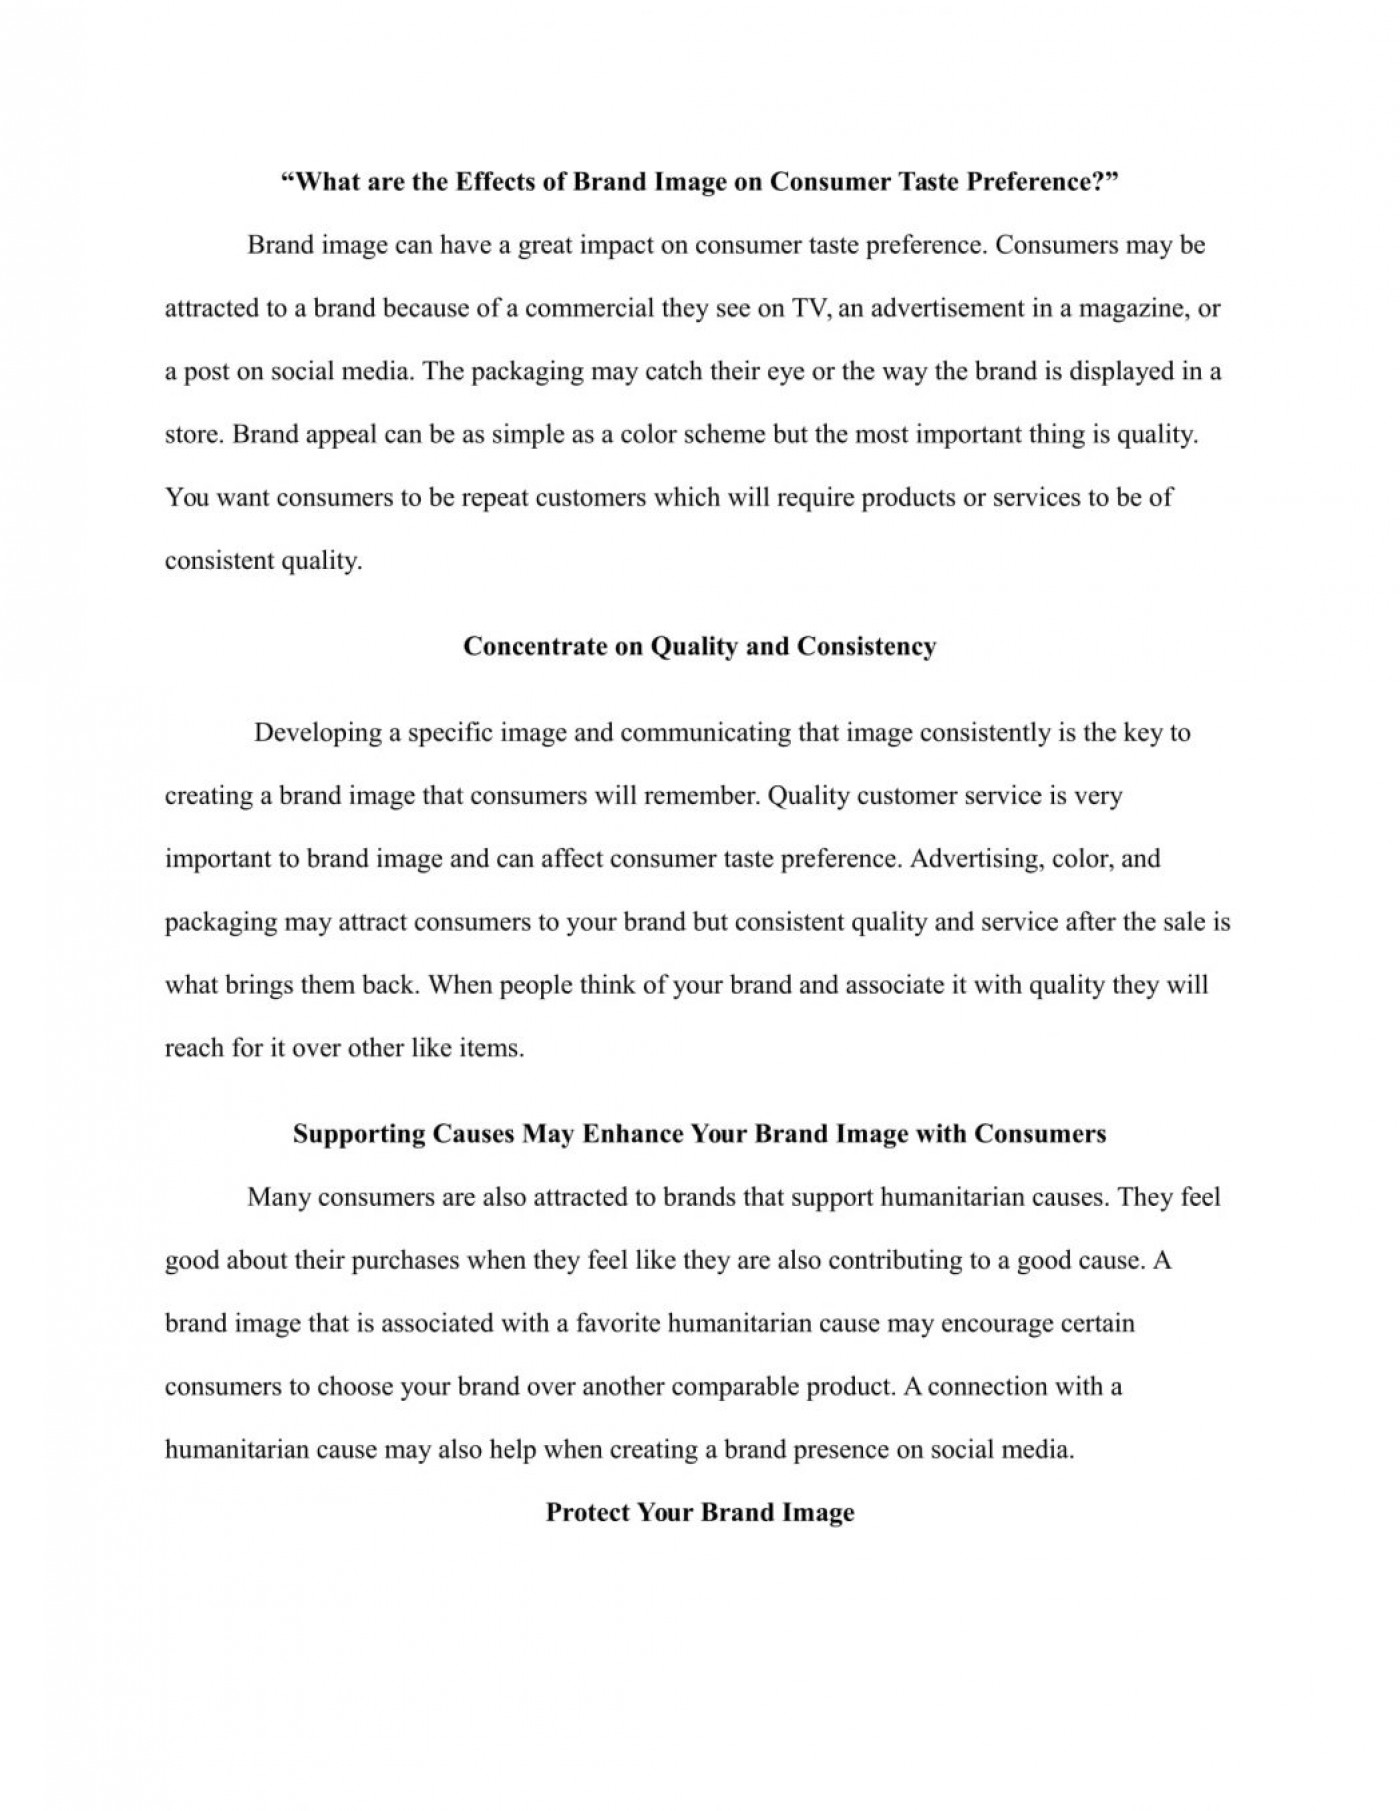 010 College Essay Heading Brand Expositions Engineering Application Expository Sam Margins Sample Personal Format Papers Entrance 1048x1356 Incredible Admissions Example 1400